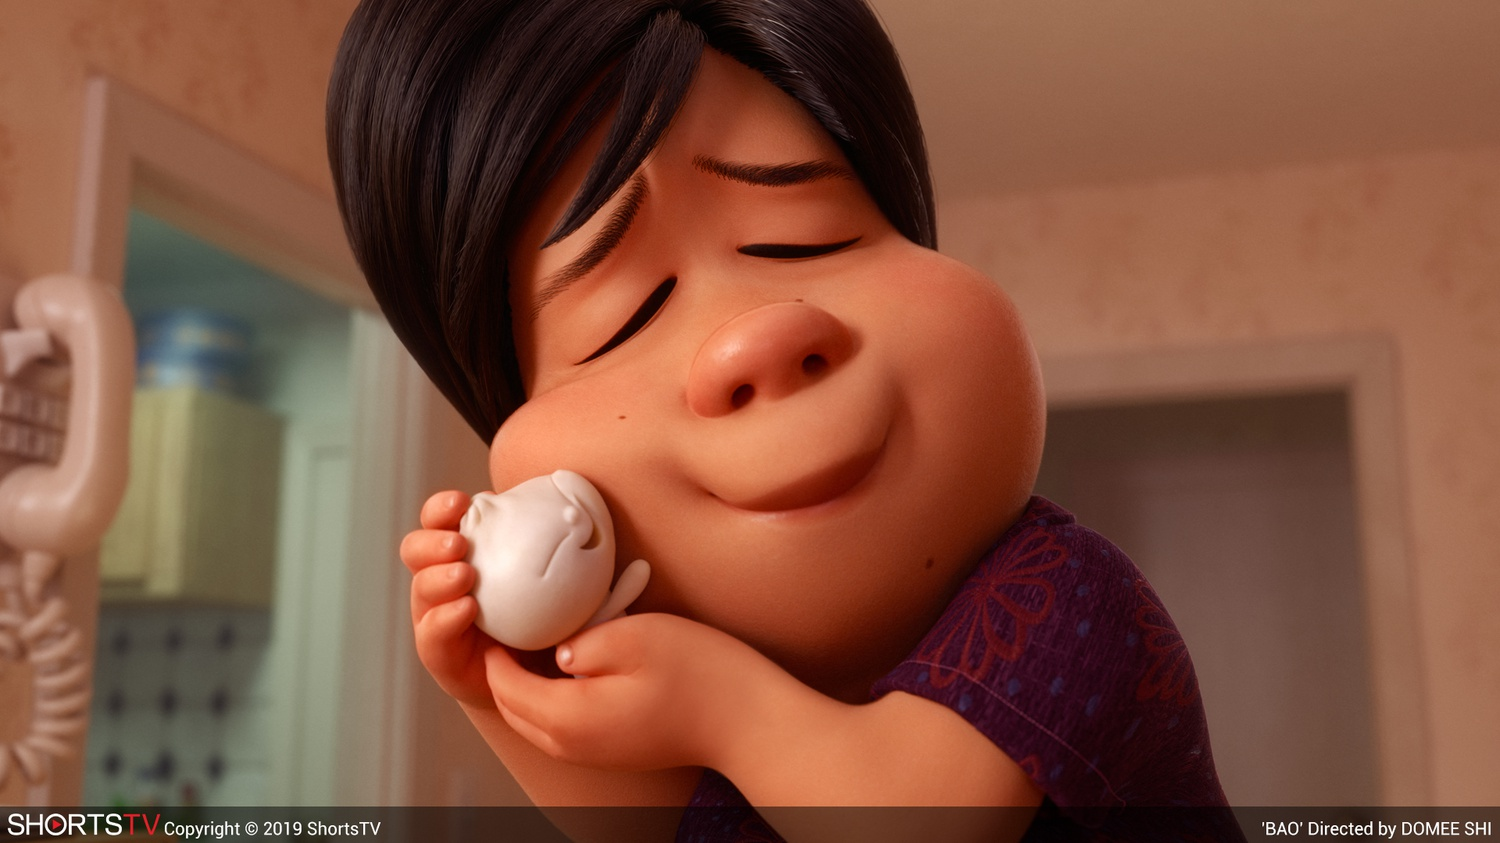 """""""Bao"""" (2018) is an animated, Oscar-nominated short film directed by Domee Shi."""